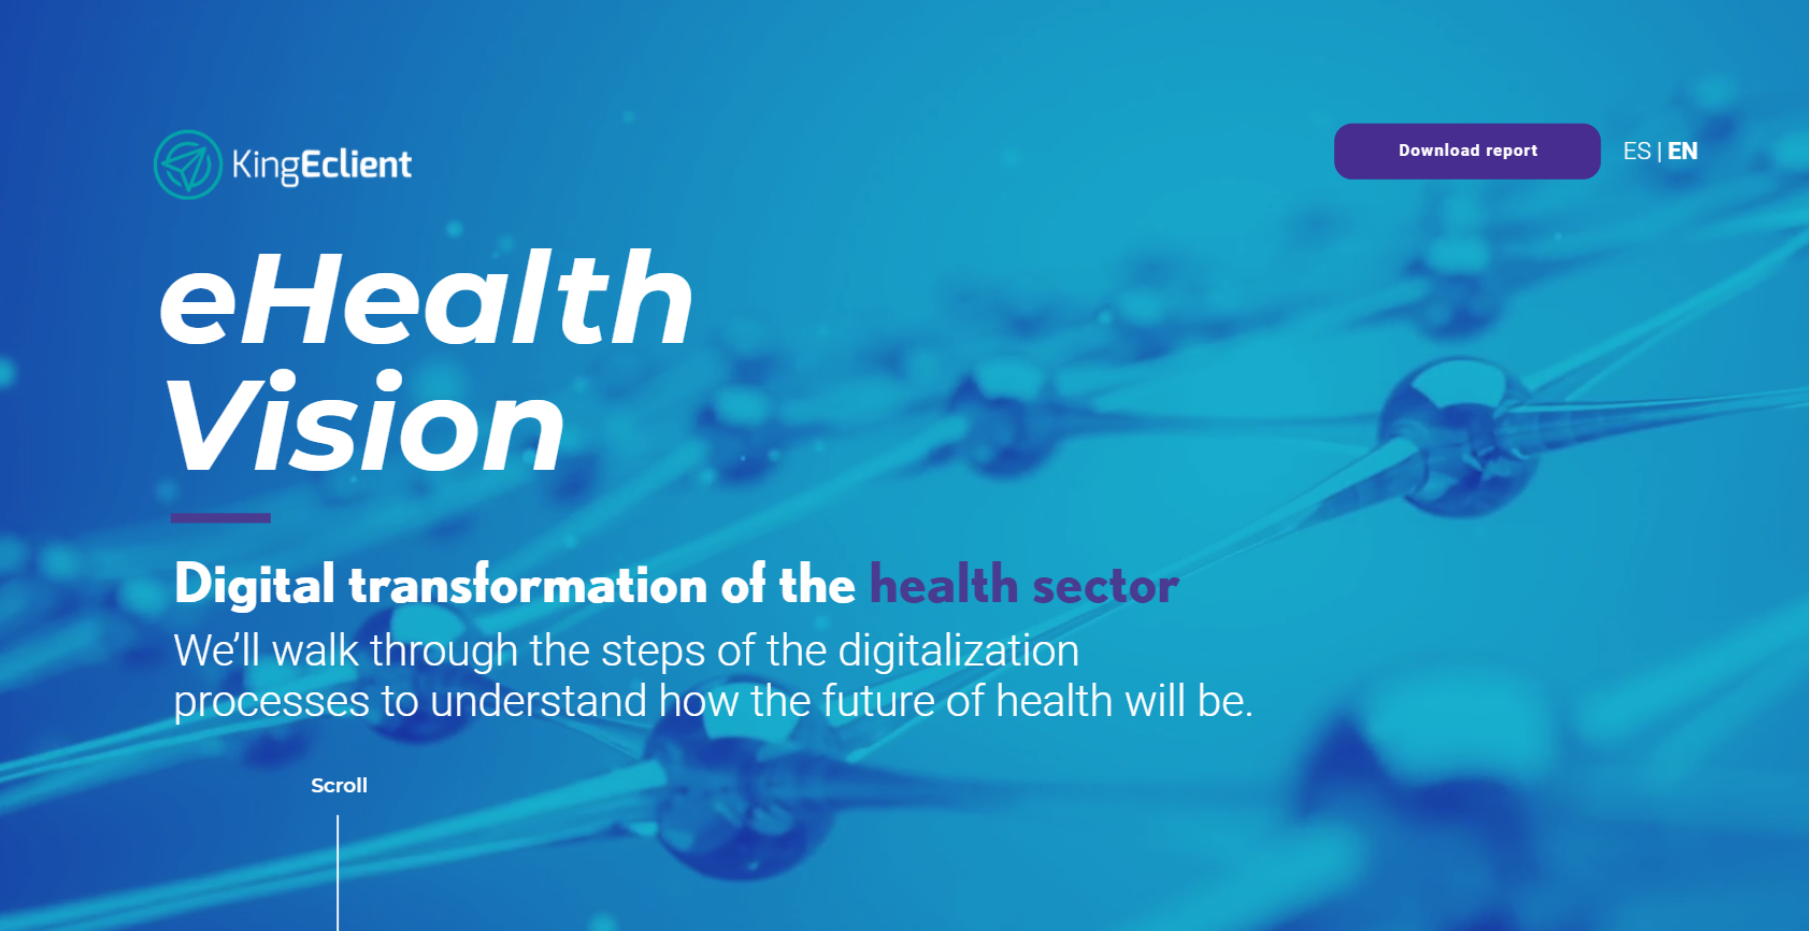 The Global Transformation of the Healthcare sector